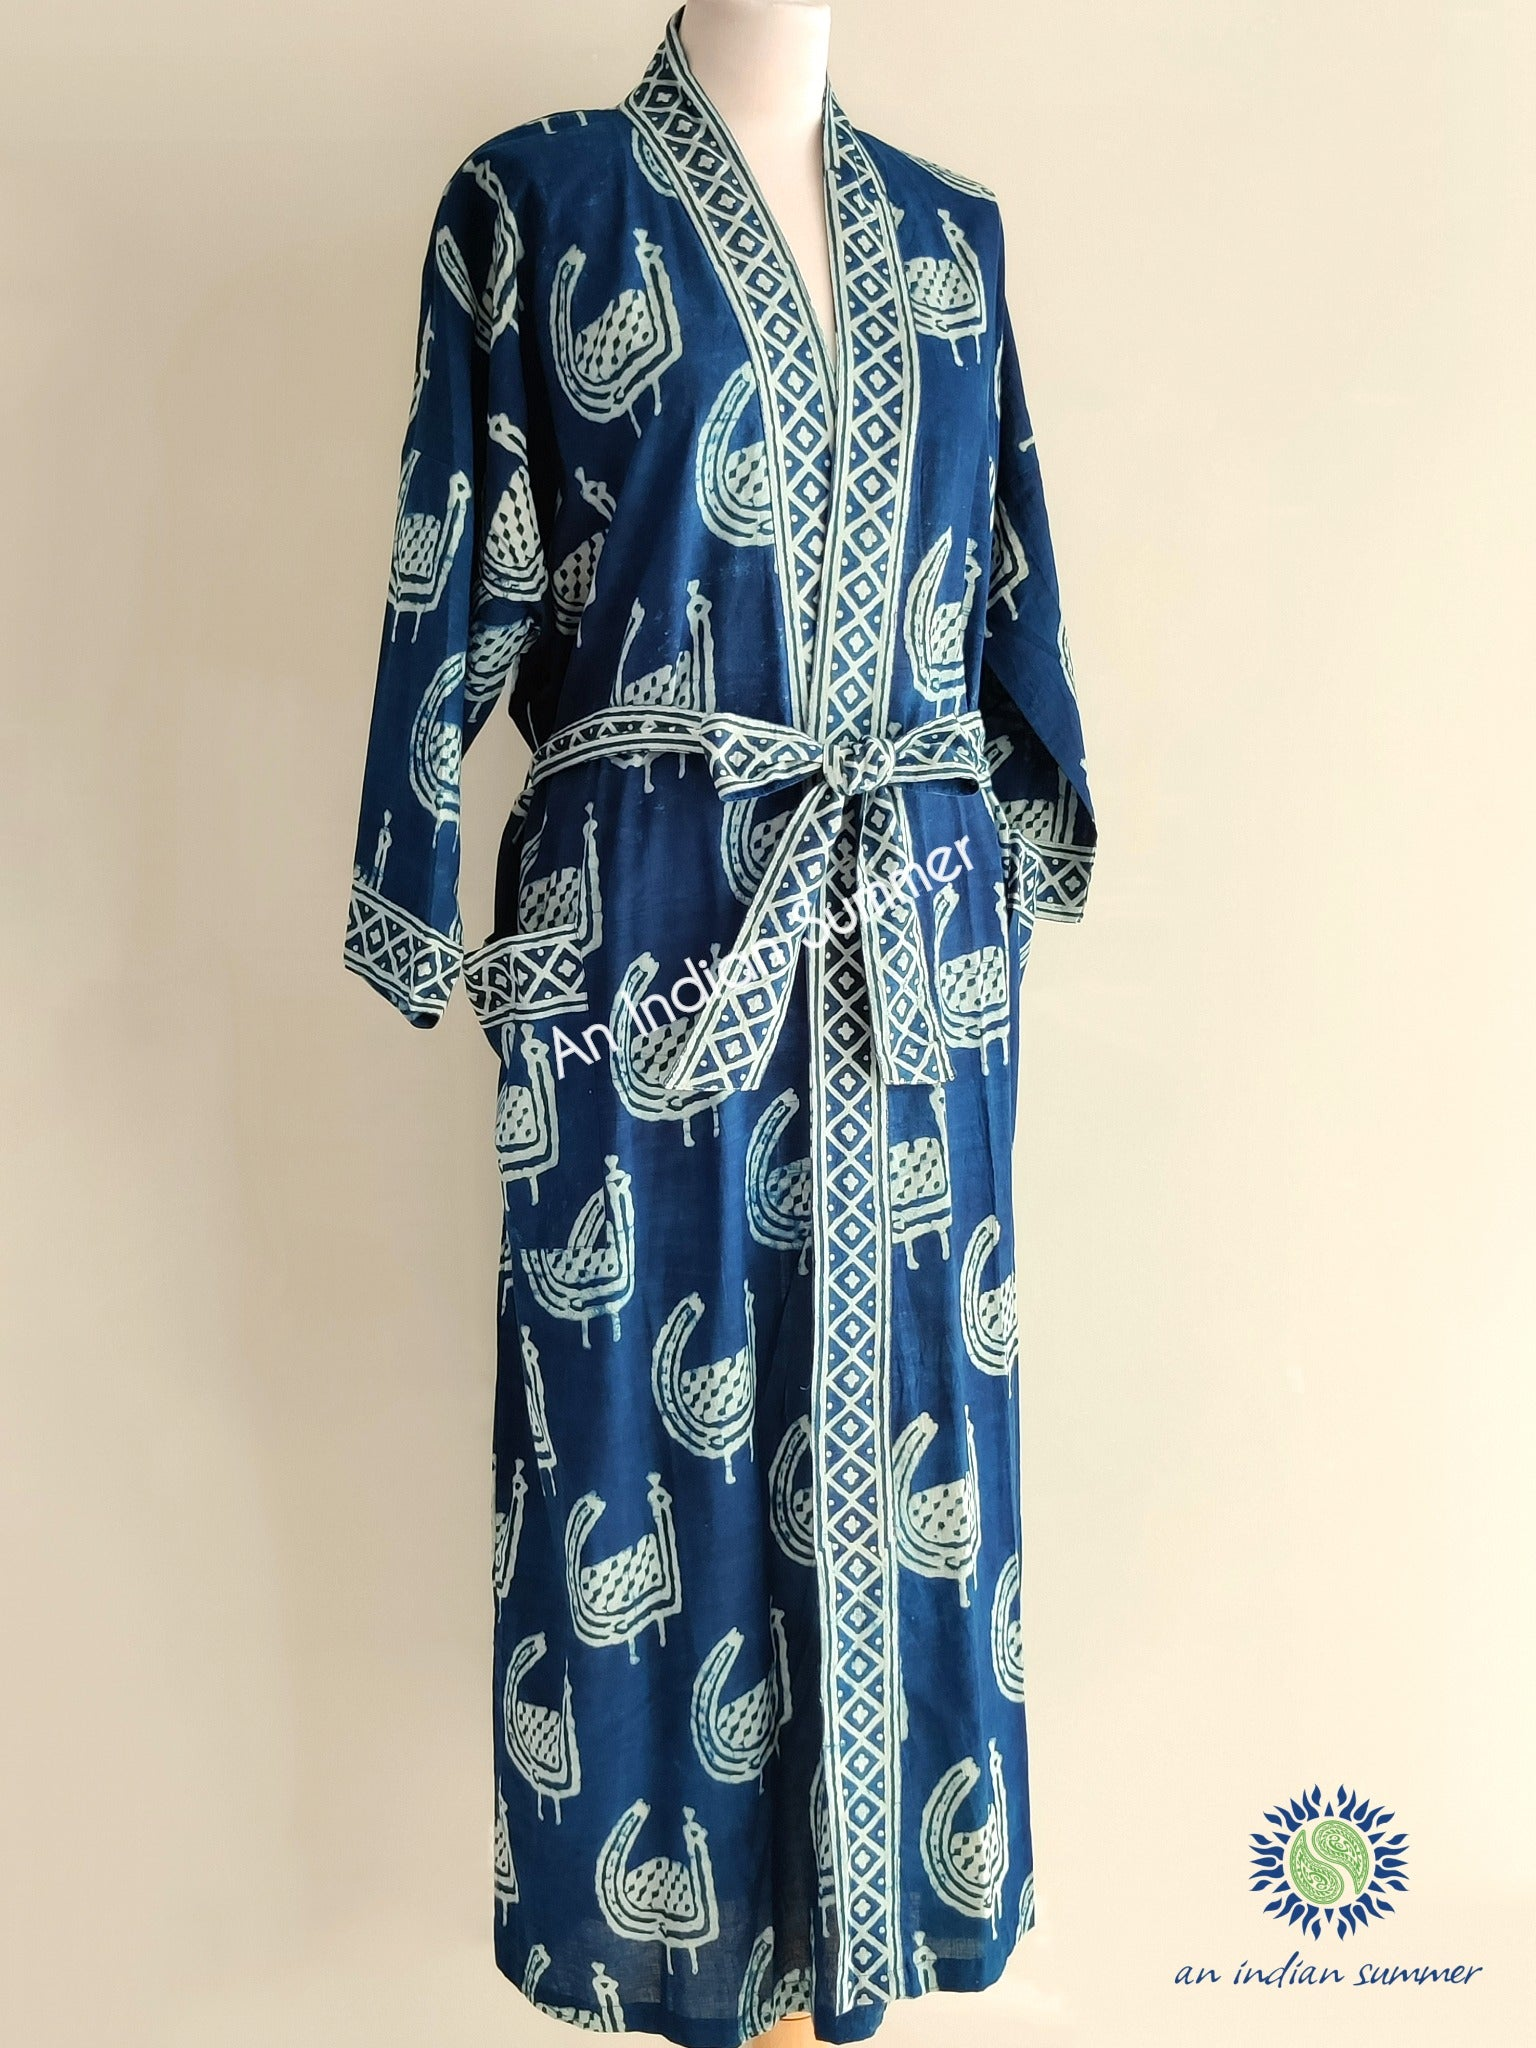 Long Kimono Robe | Natural Indigo Dyed Plant Dye | Peacock Design Abstract Block Print | Hand Block Printed | Cotton Voile | An Indian Summer | Seasonless Timeless Sustainable Ethical Authentic Artisan Conscious Clothing Lifestyle Brand